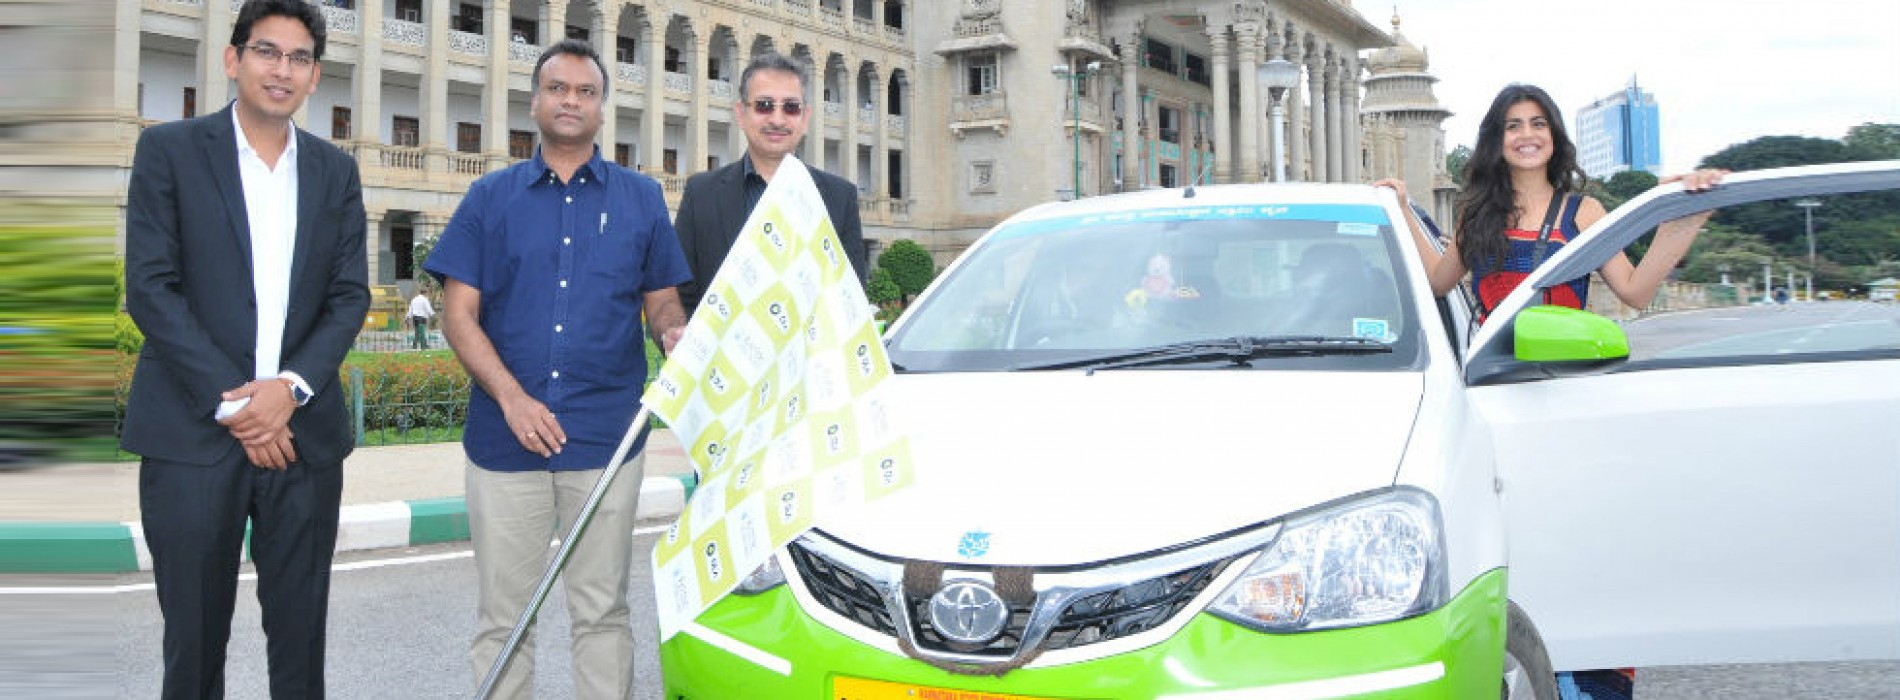 Ola launches campaign #GhoomoResponsibly to encourage travellers to travel responsibly